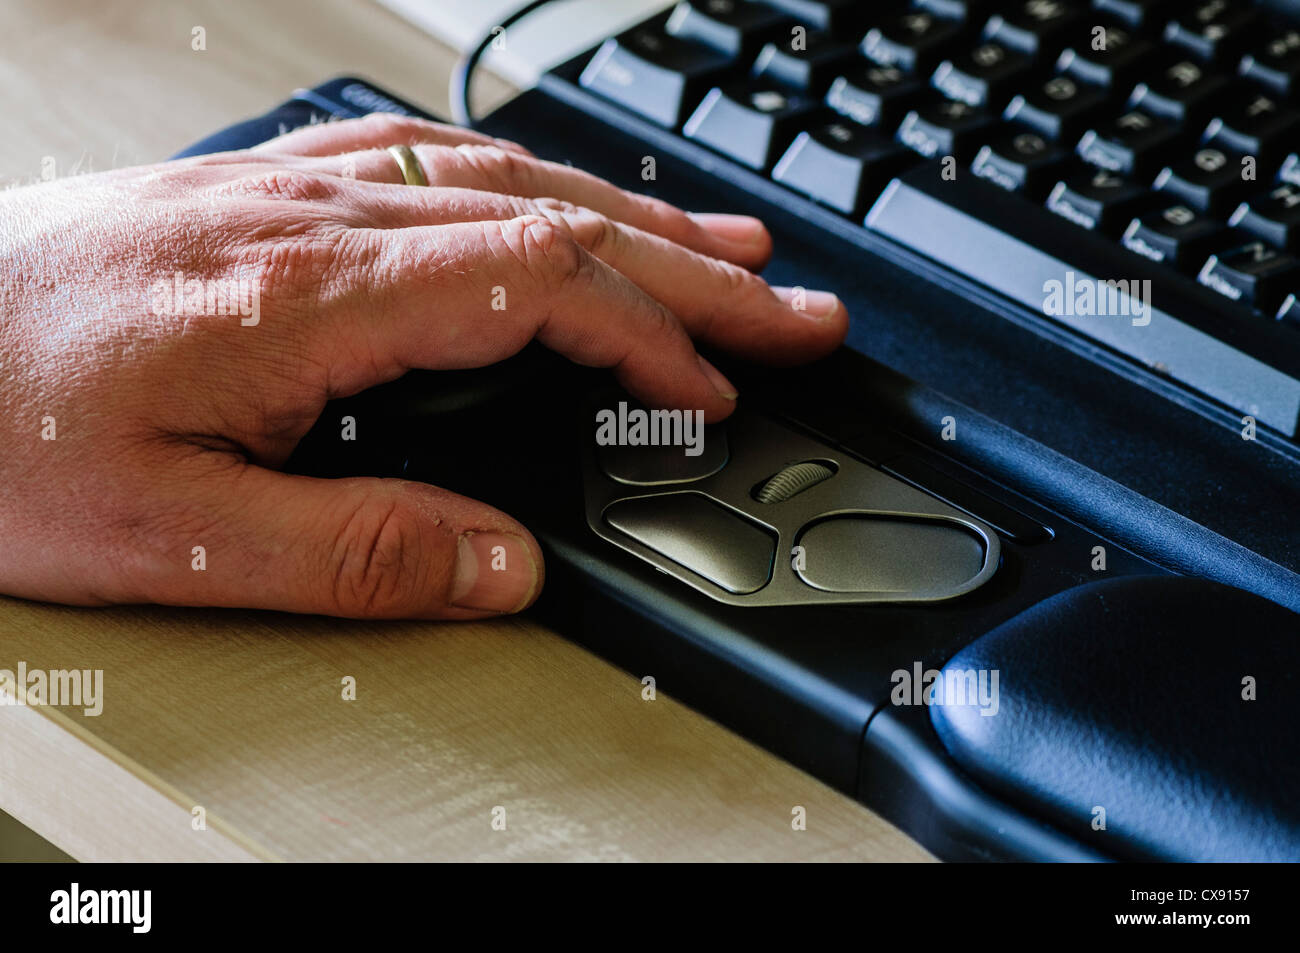 Man uses a RollerMouse Pro2 ergonomic computer mouse for people with wrist problems - Stock Image